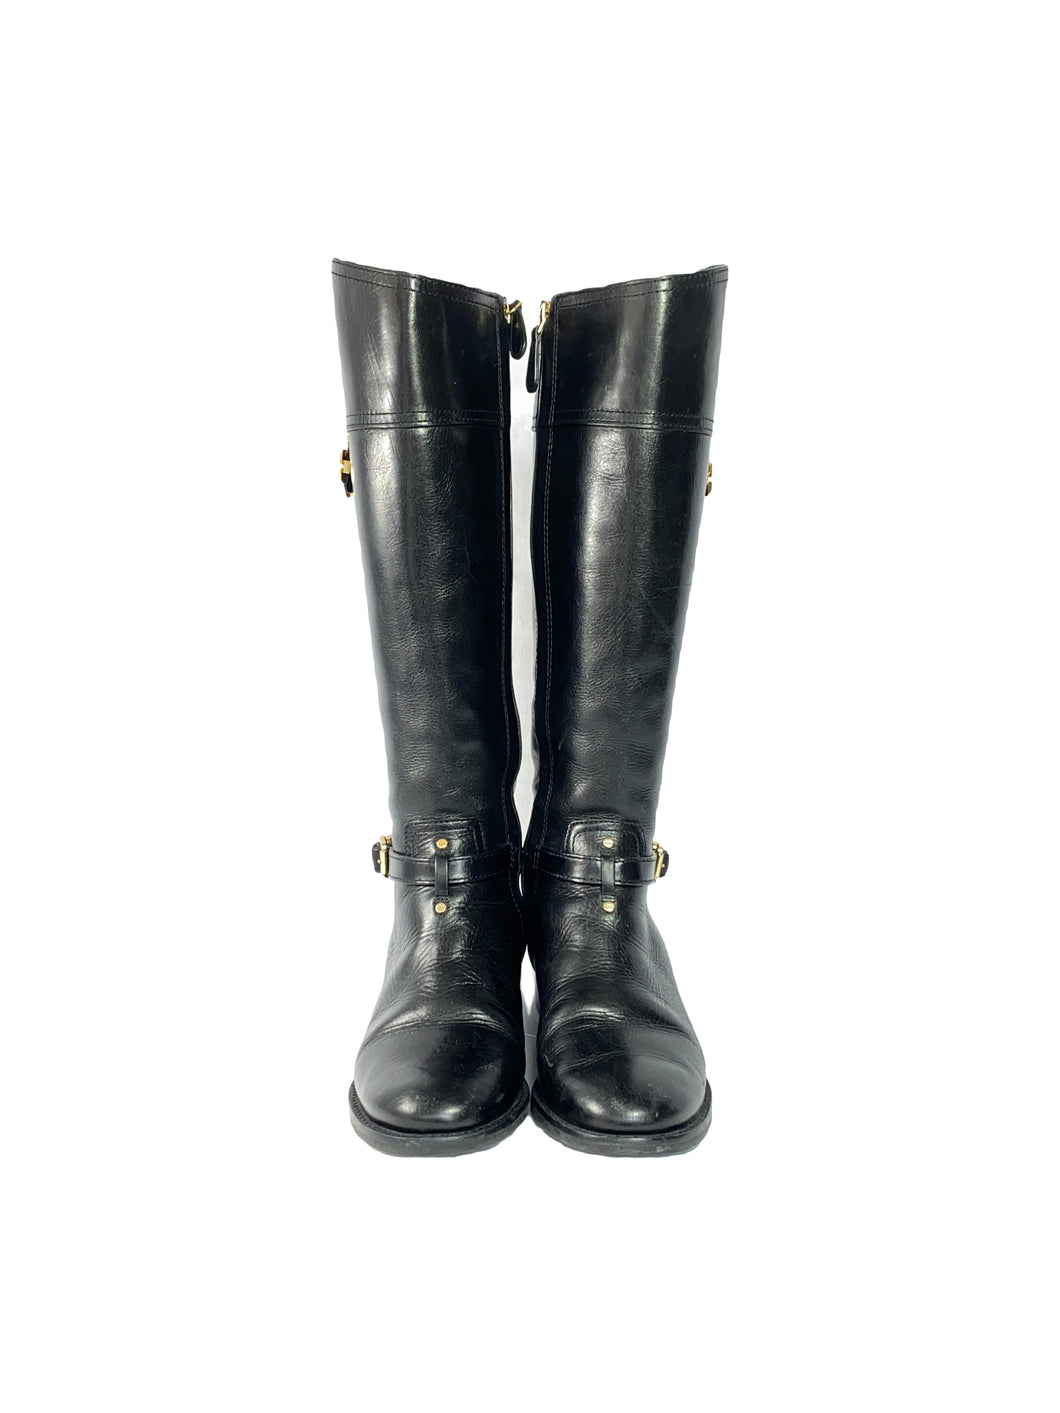 Tory Burch black leather tall boots size 7.5